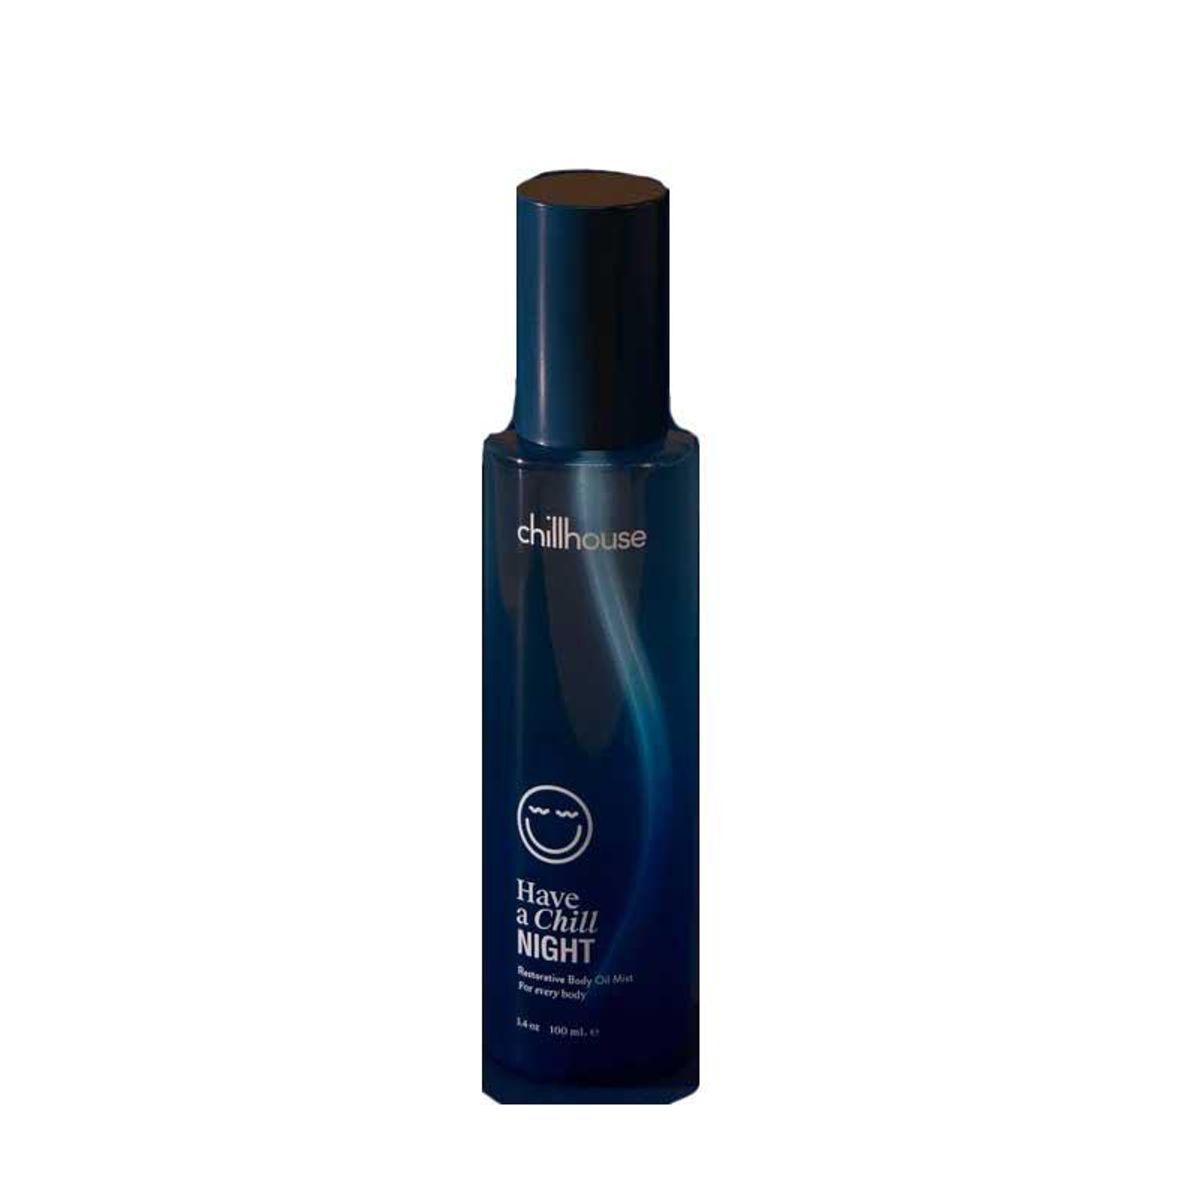 chillhouse have a chill night body oil